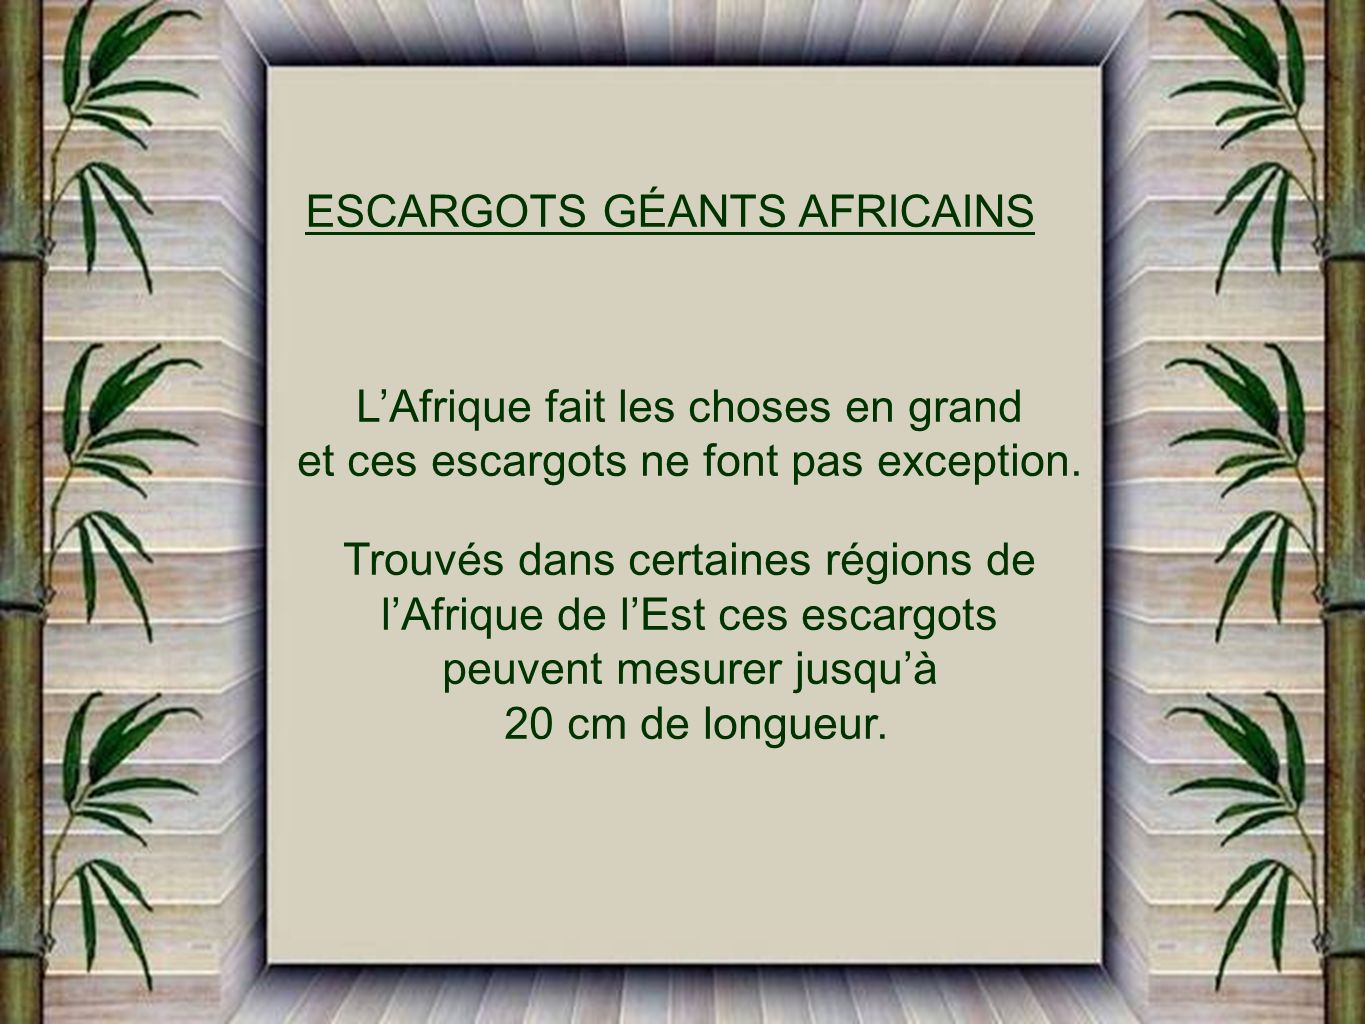 ESCARGOTS GÉANTS AFRICAINS